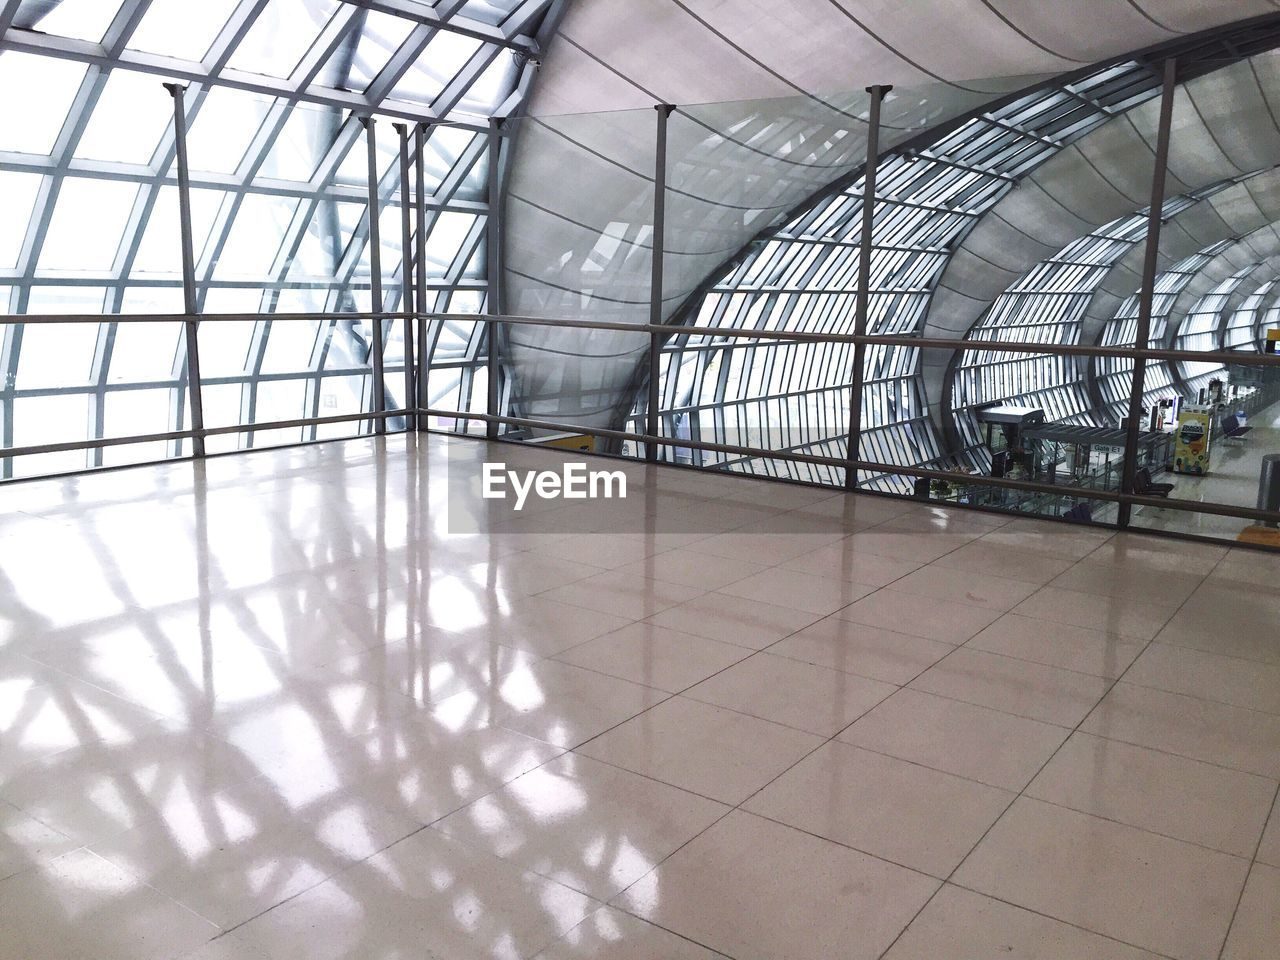 indoors, transportation, architecture, airport, built structure, day, transportation building - type of building, no people, close-up